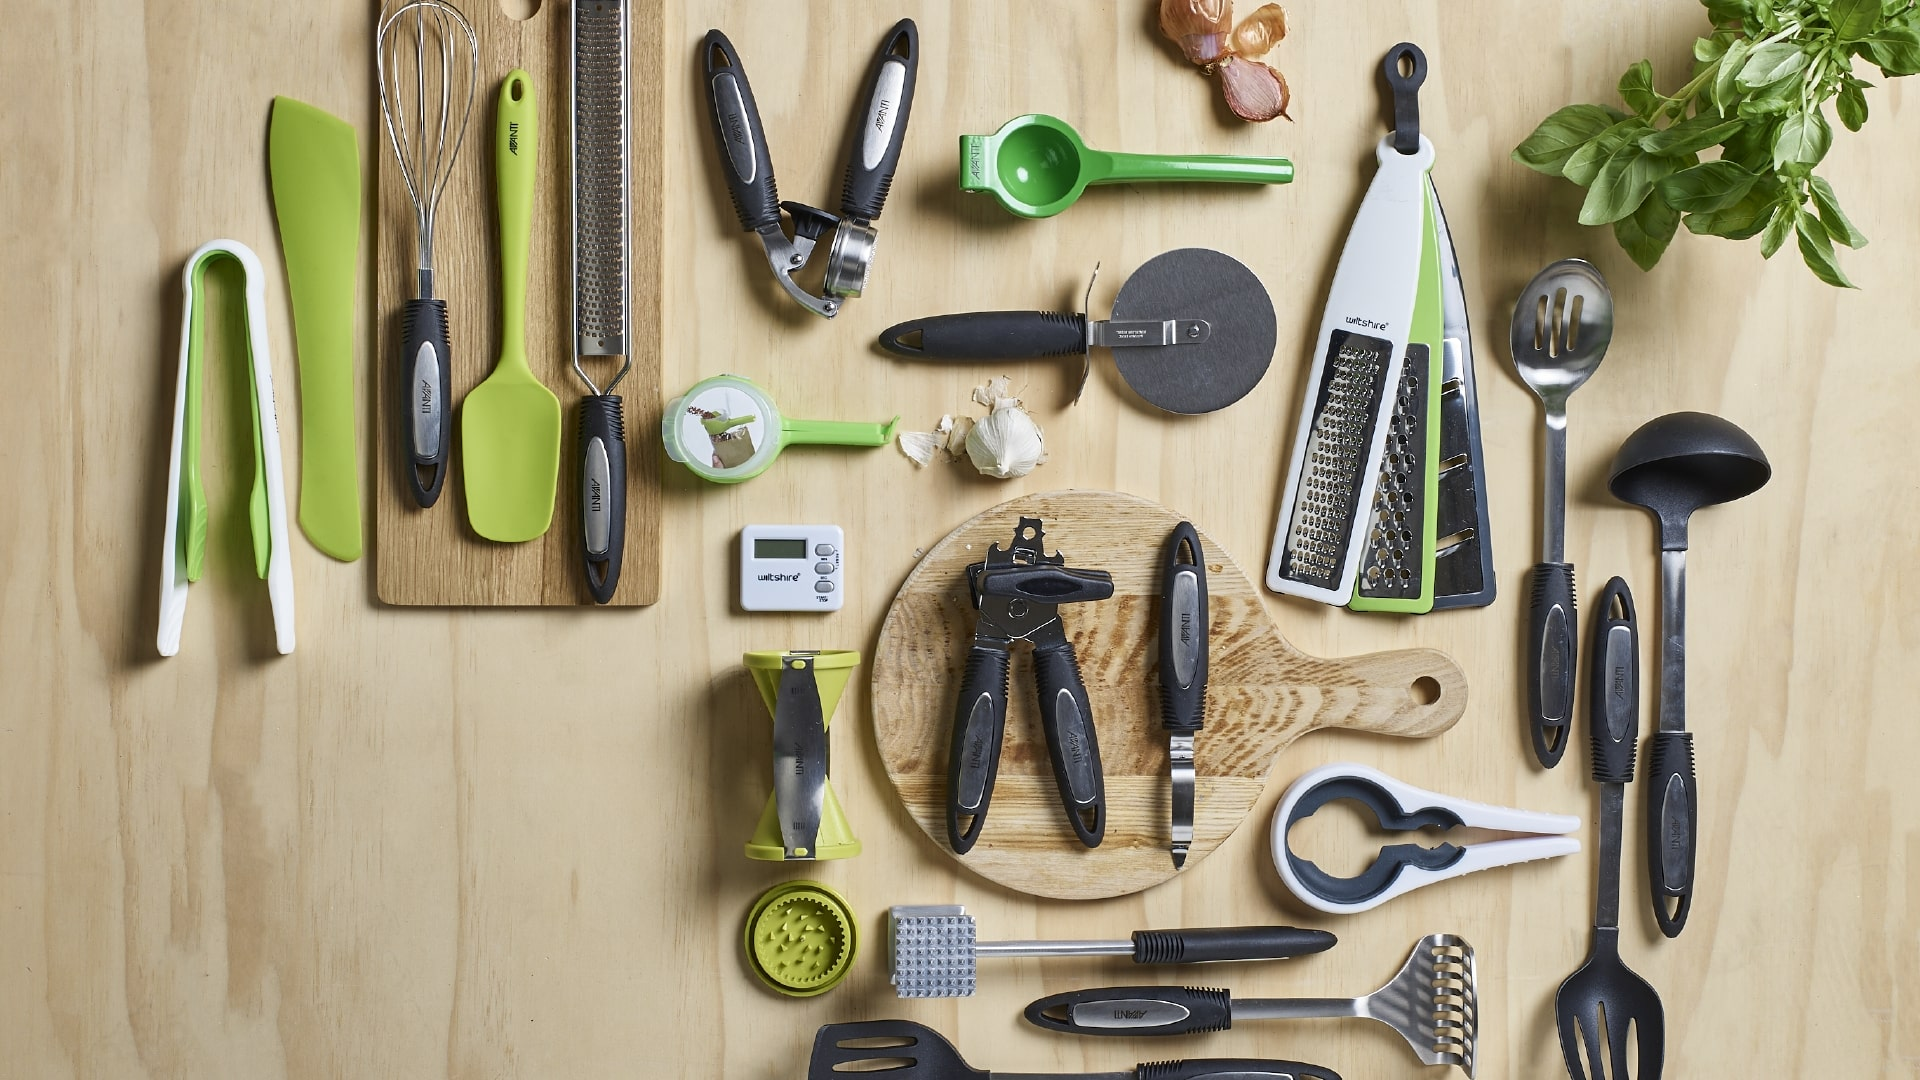 Choosing The Right Kitchen Utensils